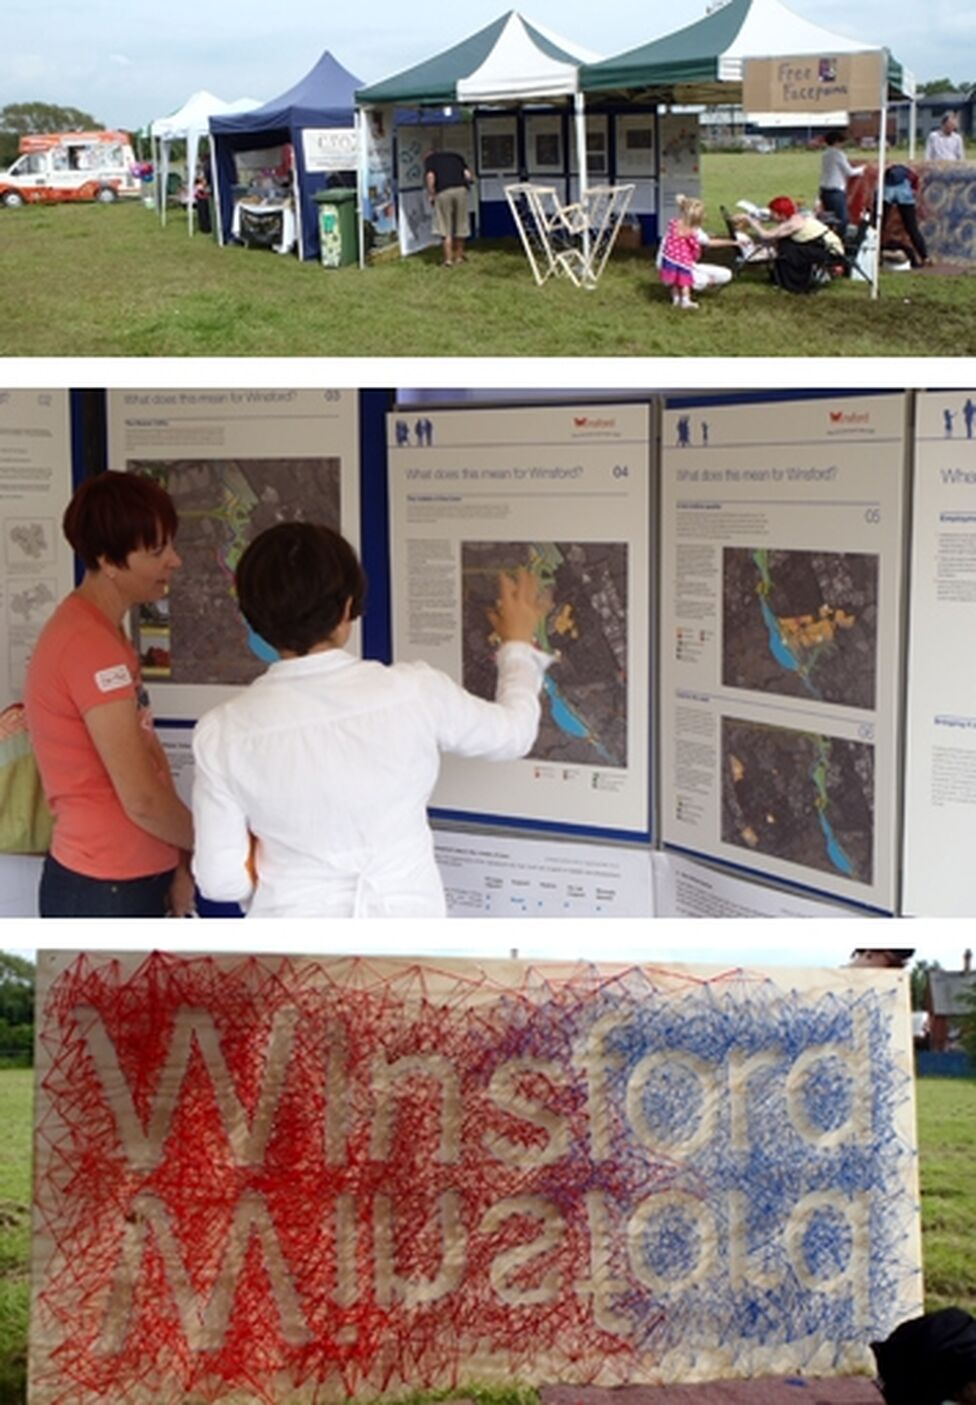 Winsford-featured